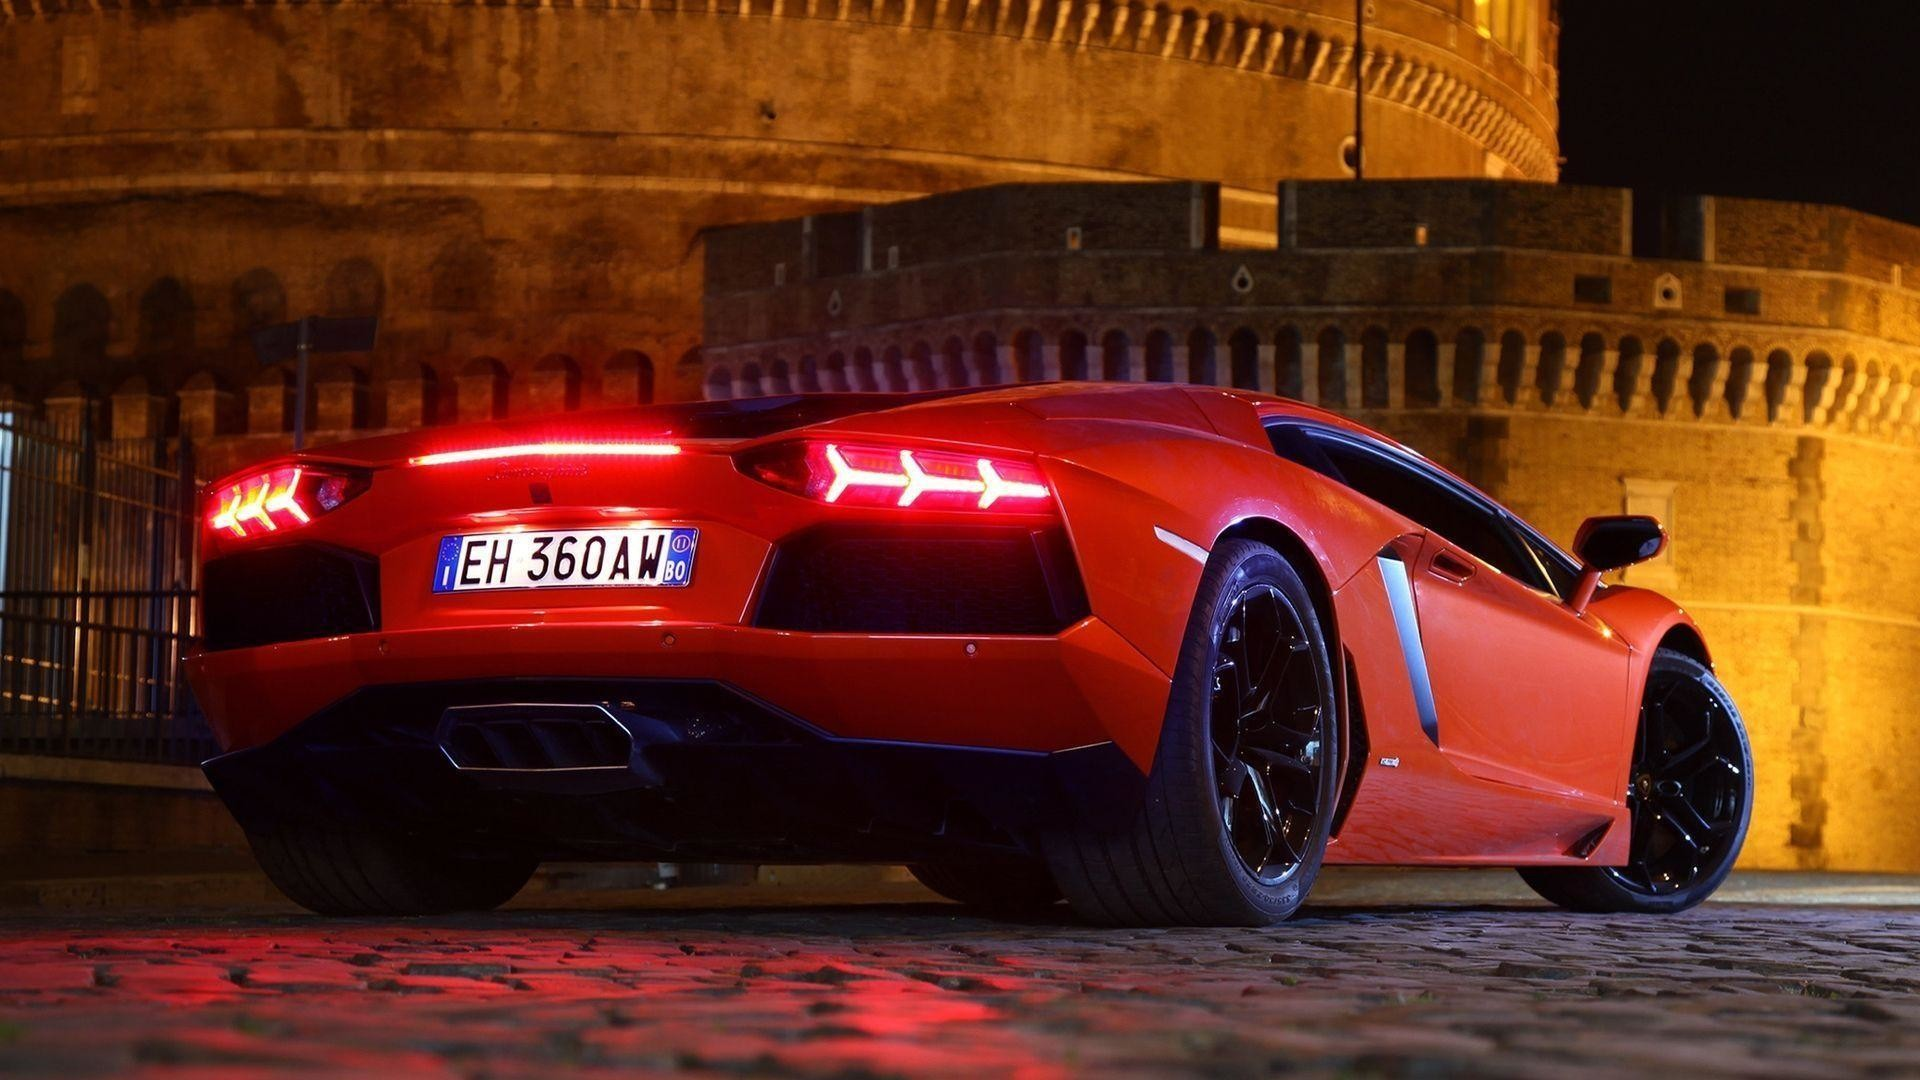 Wallpapers Full Hd 1080p Lamborghini New 77 Background Pictures